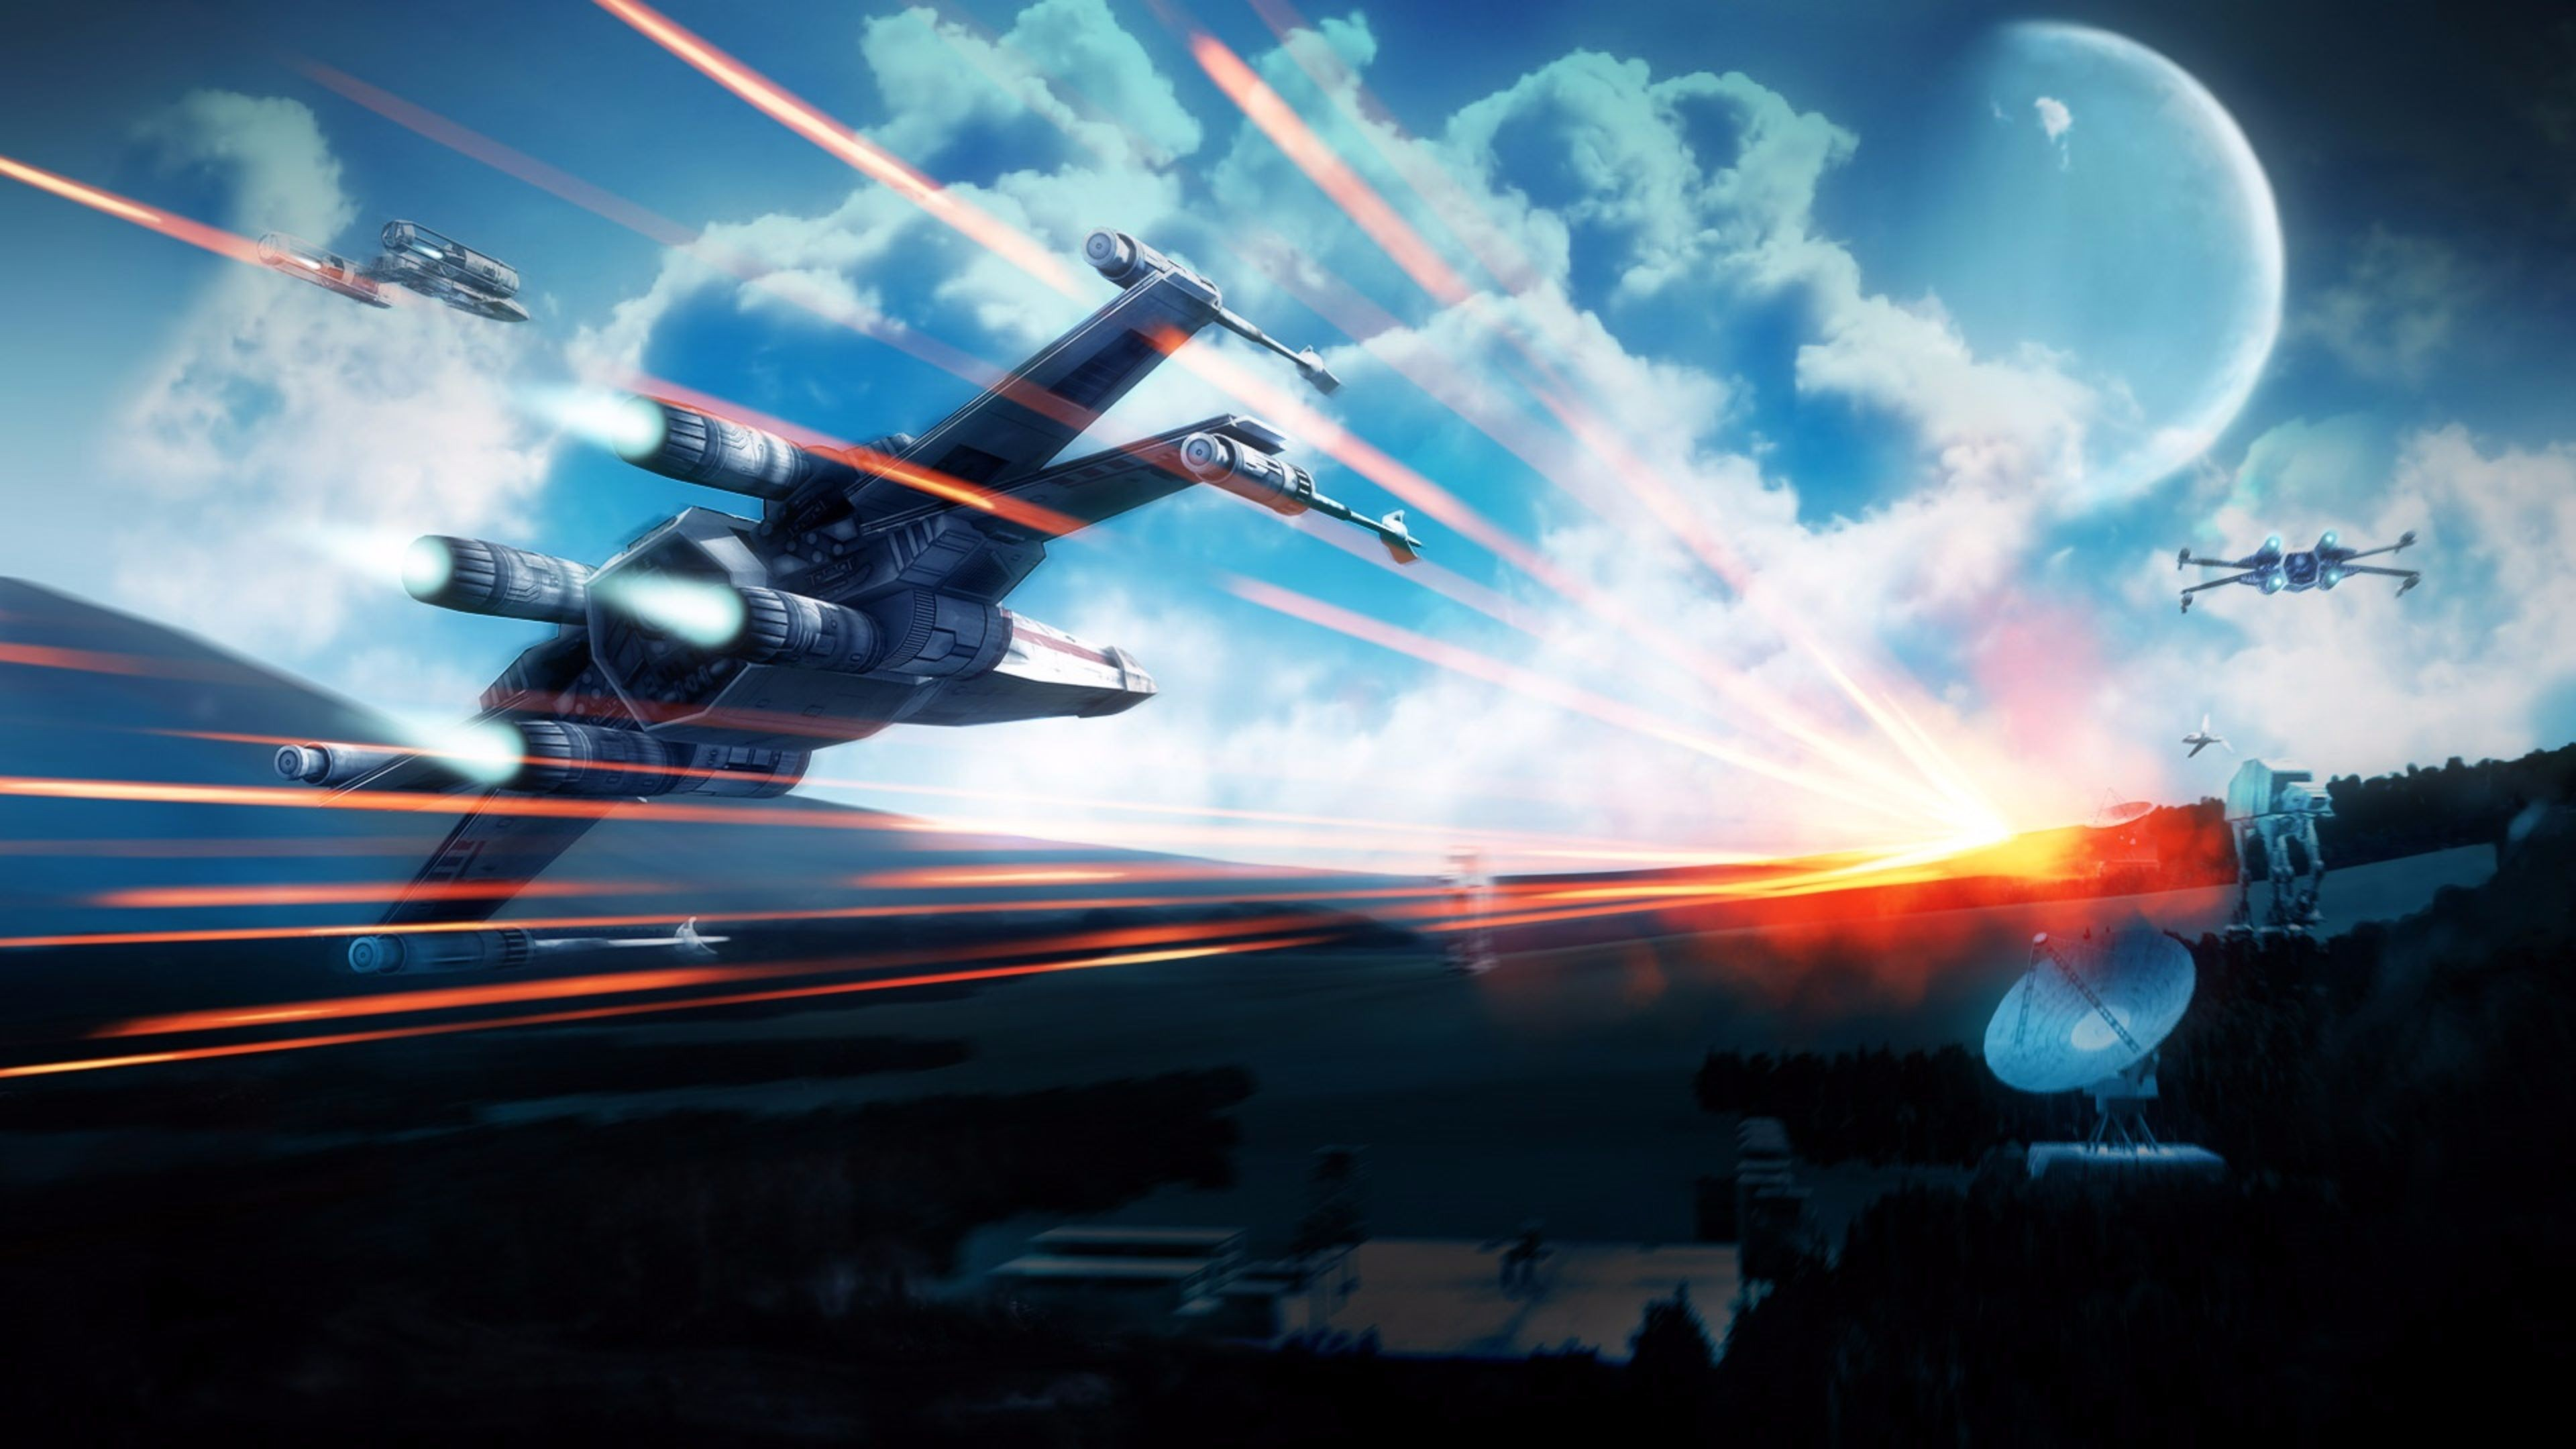 4k Star Wars Wallpaper High Quality Star Wars 3840x2160 Wallpaper Teahub Io